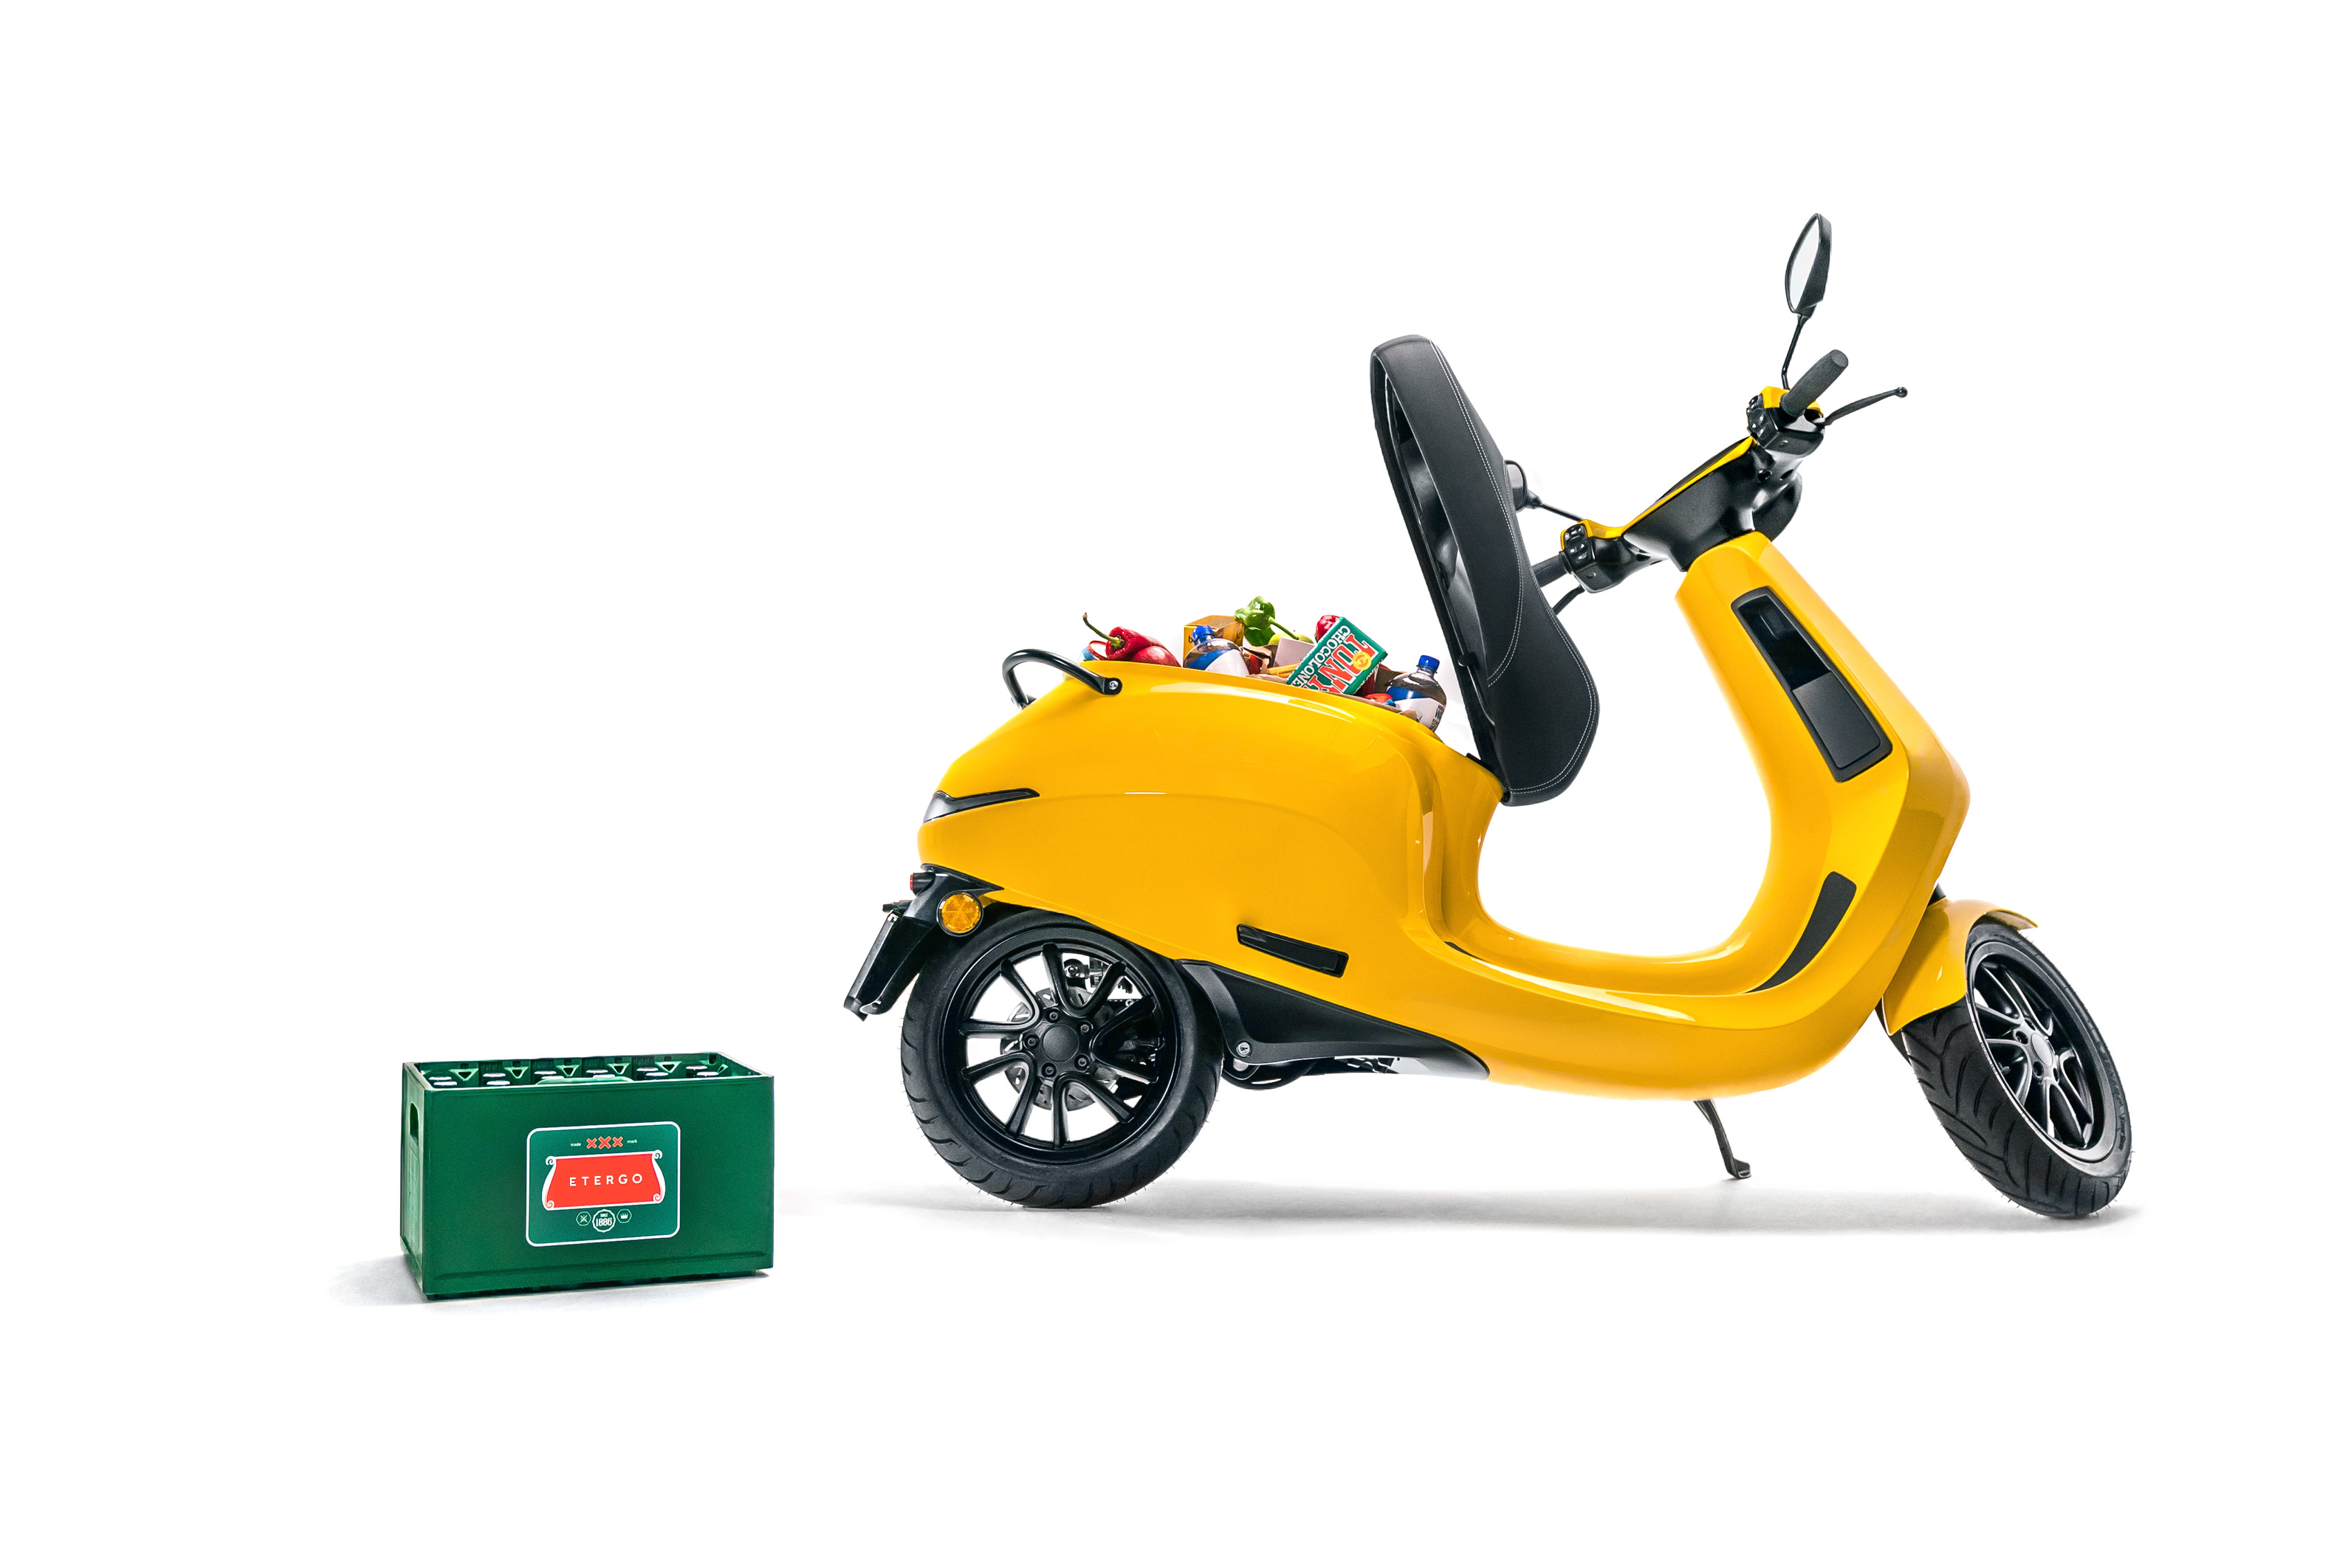 Etergo secures €10M to produce 240 km range modular battery swapping electric scooter